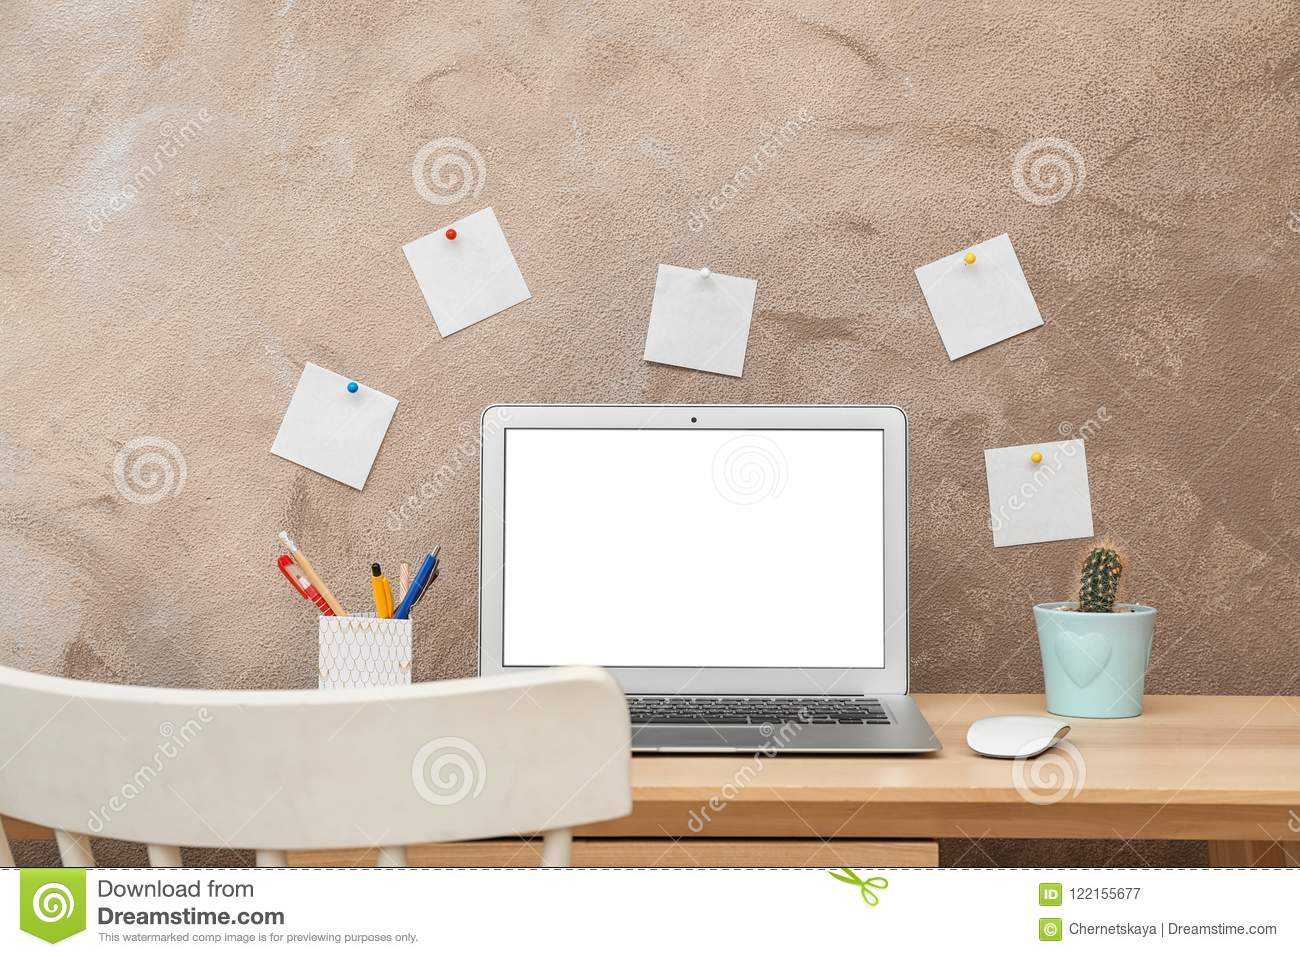 Stupendous Laptop On Desk Against Color Wall In Home Office Stock Image Download Free Architecture Designs Scobabritishbridgeorg